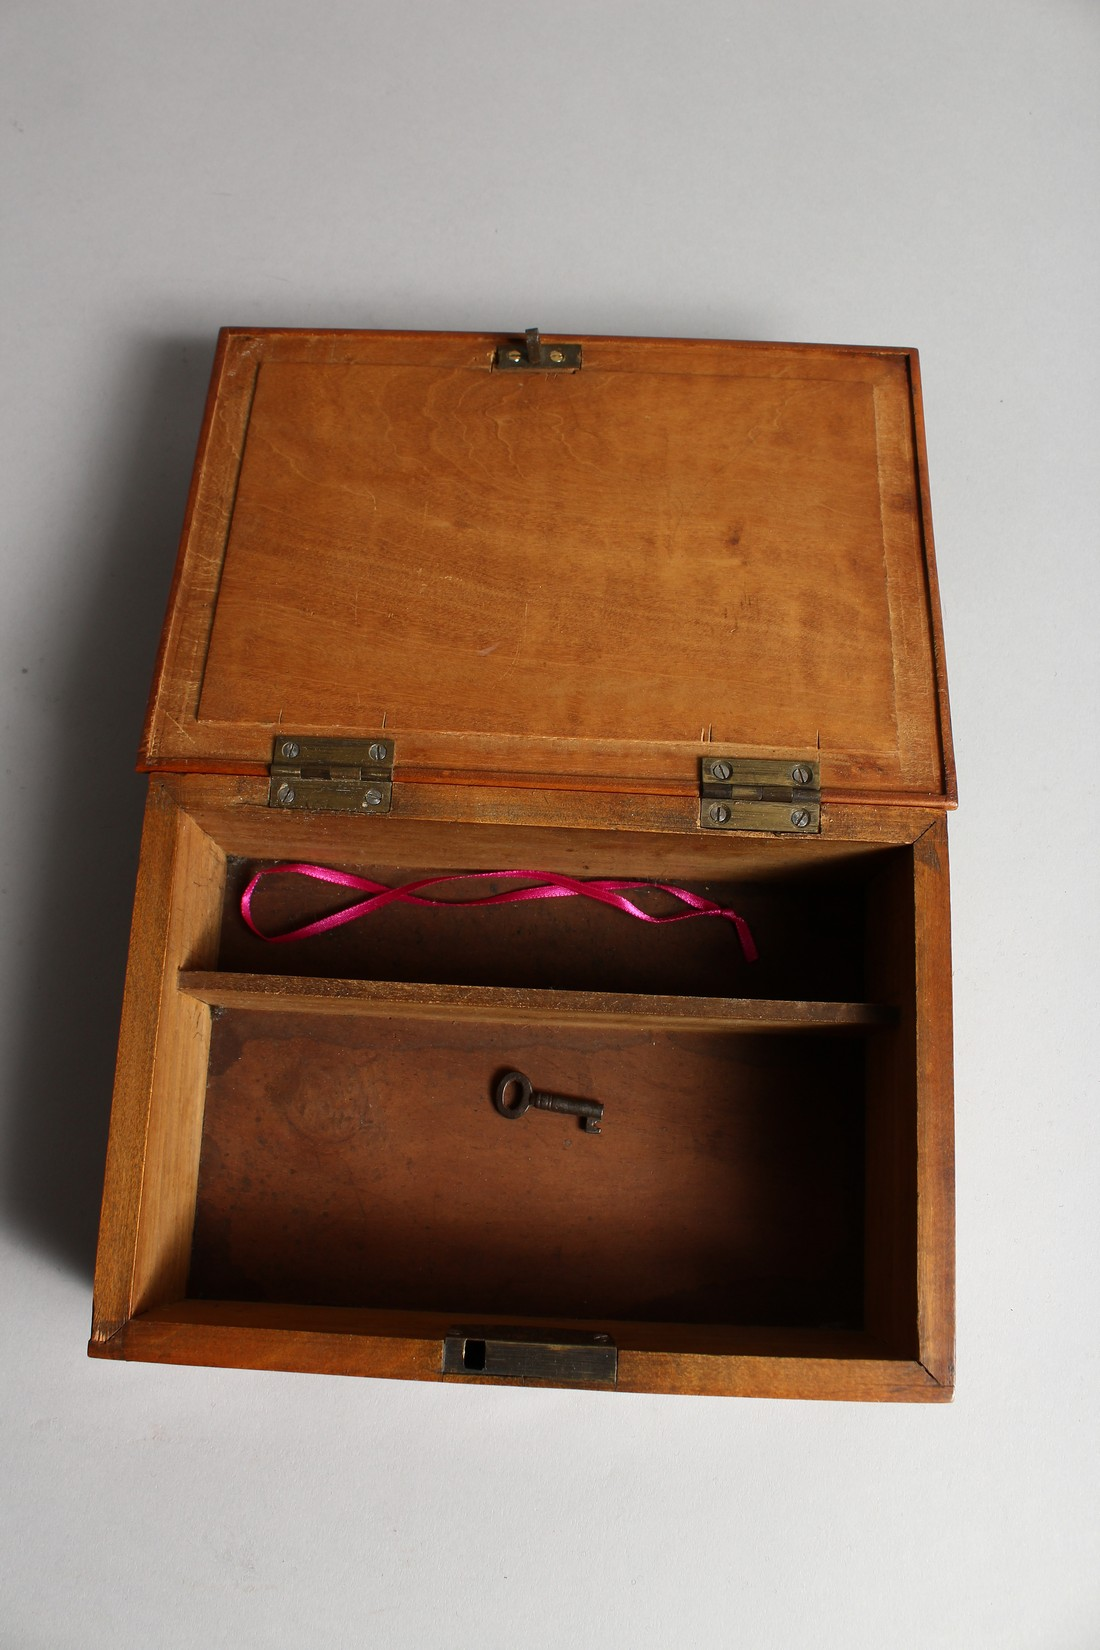 A TORTOISESHELL RECTANGULAR BOX AND COVER 8.5ins long. - Image 4 of 4